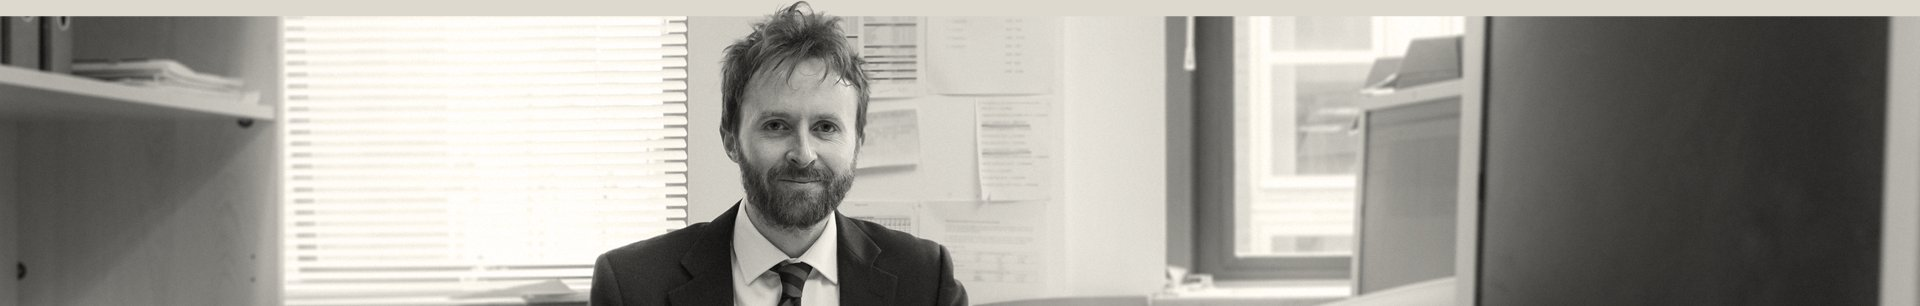 Paul Deans | Thompsons Solicitors Scotland